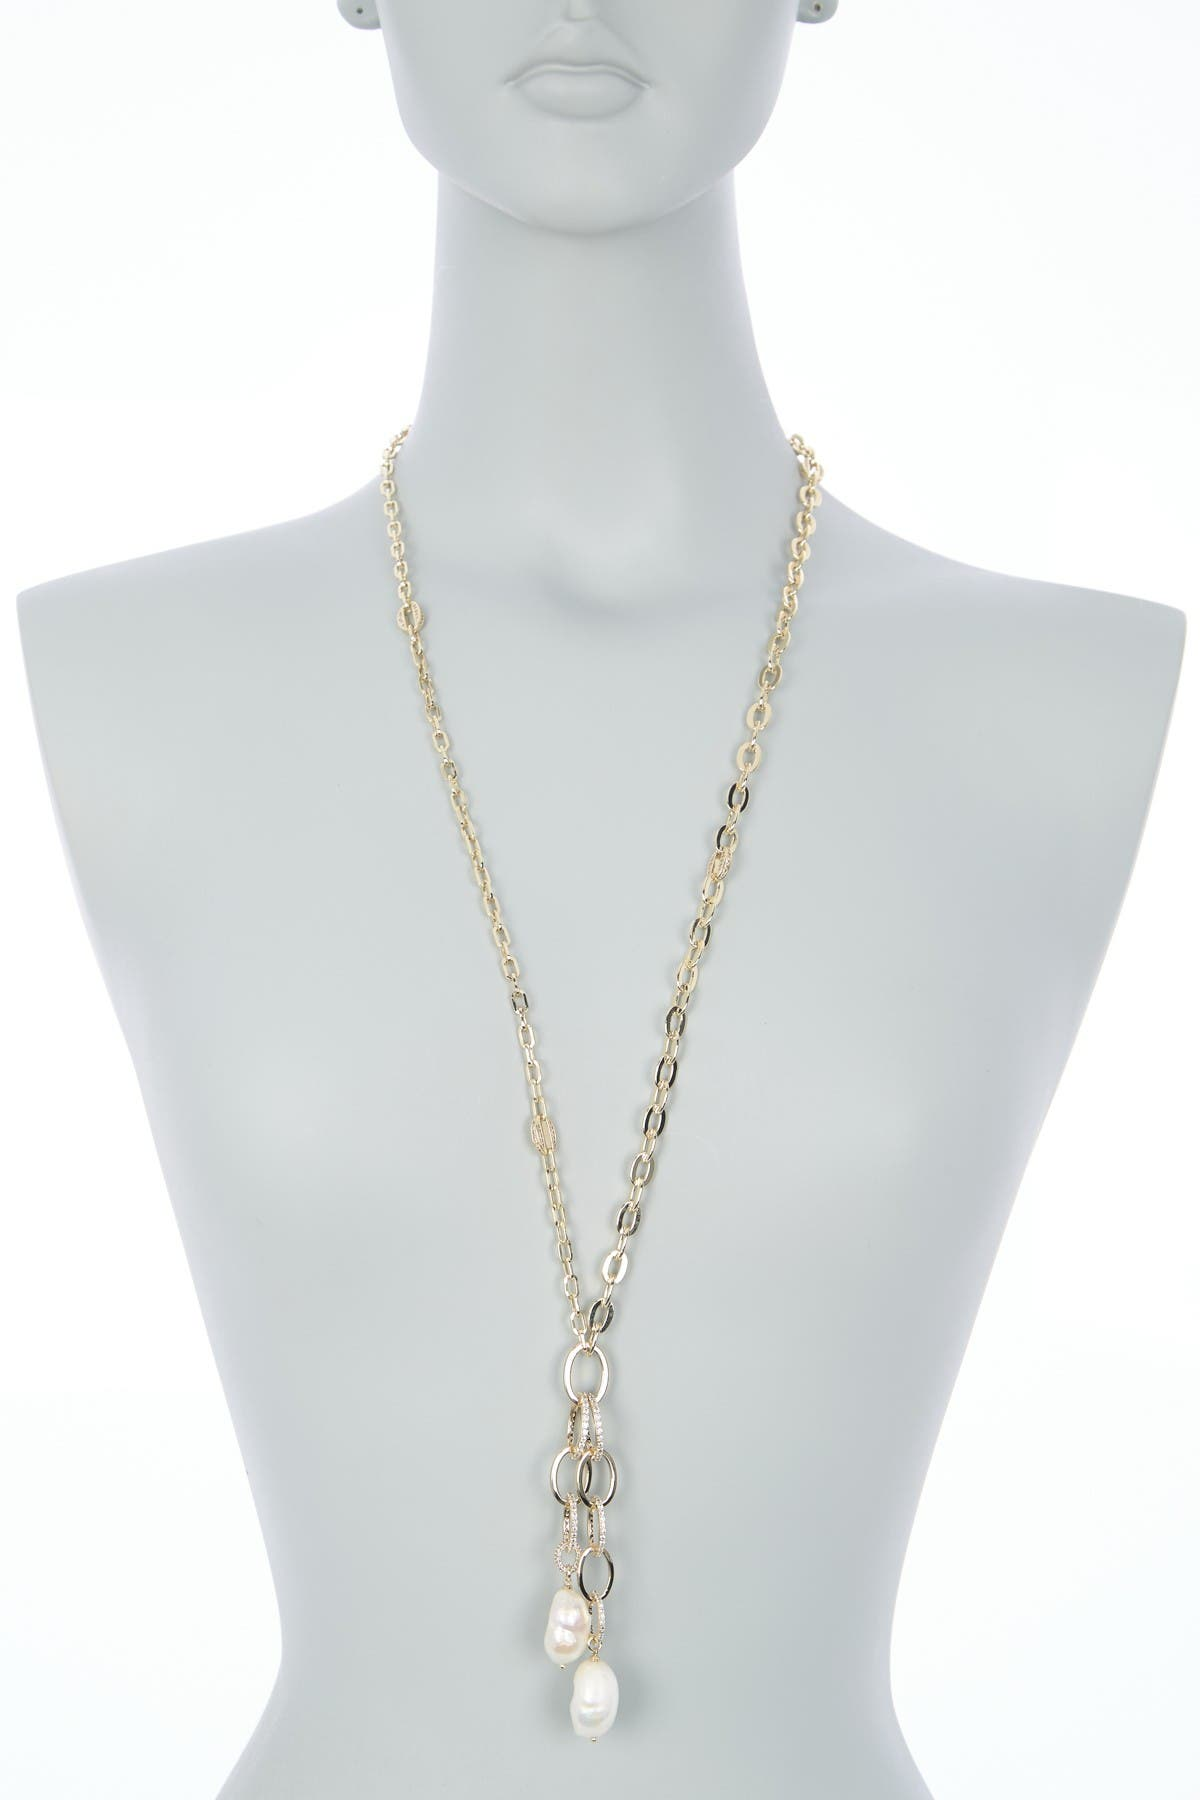 Carolee Diana Gold-Tone Plated Sterling Silver Freshwater Pearl Link Long Necklace